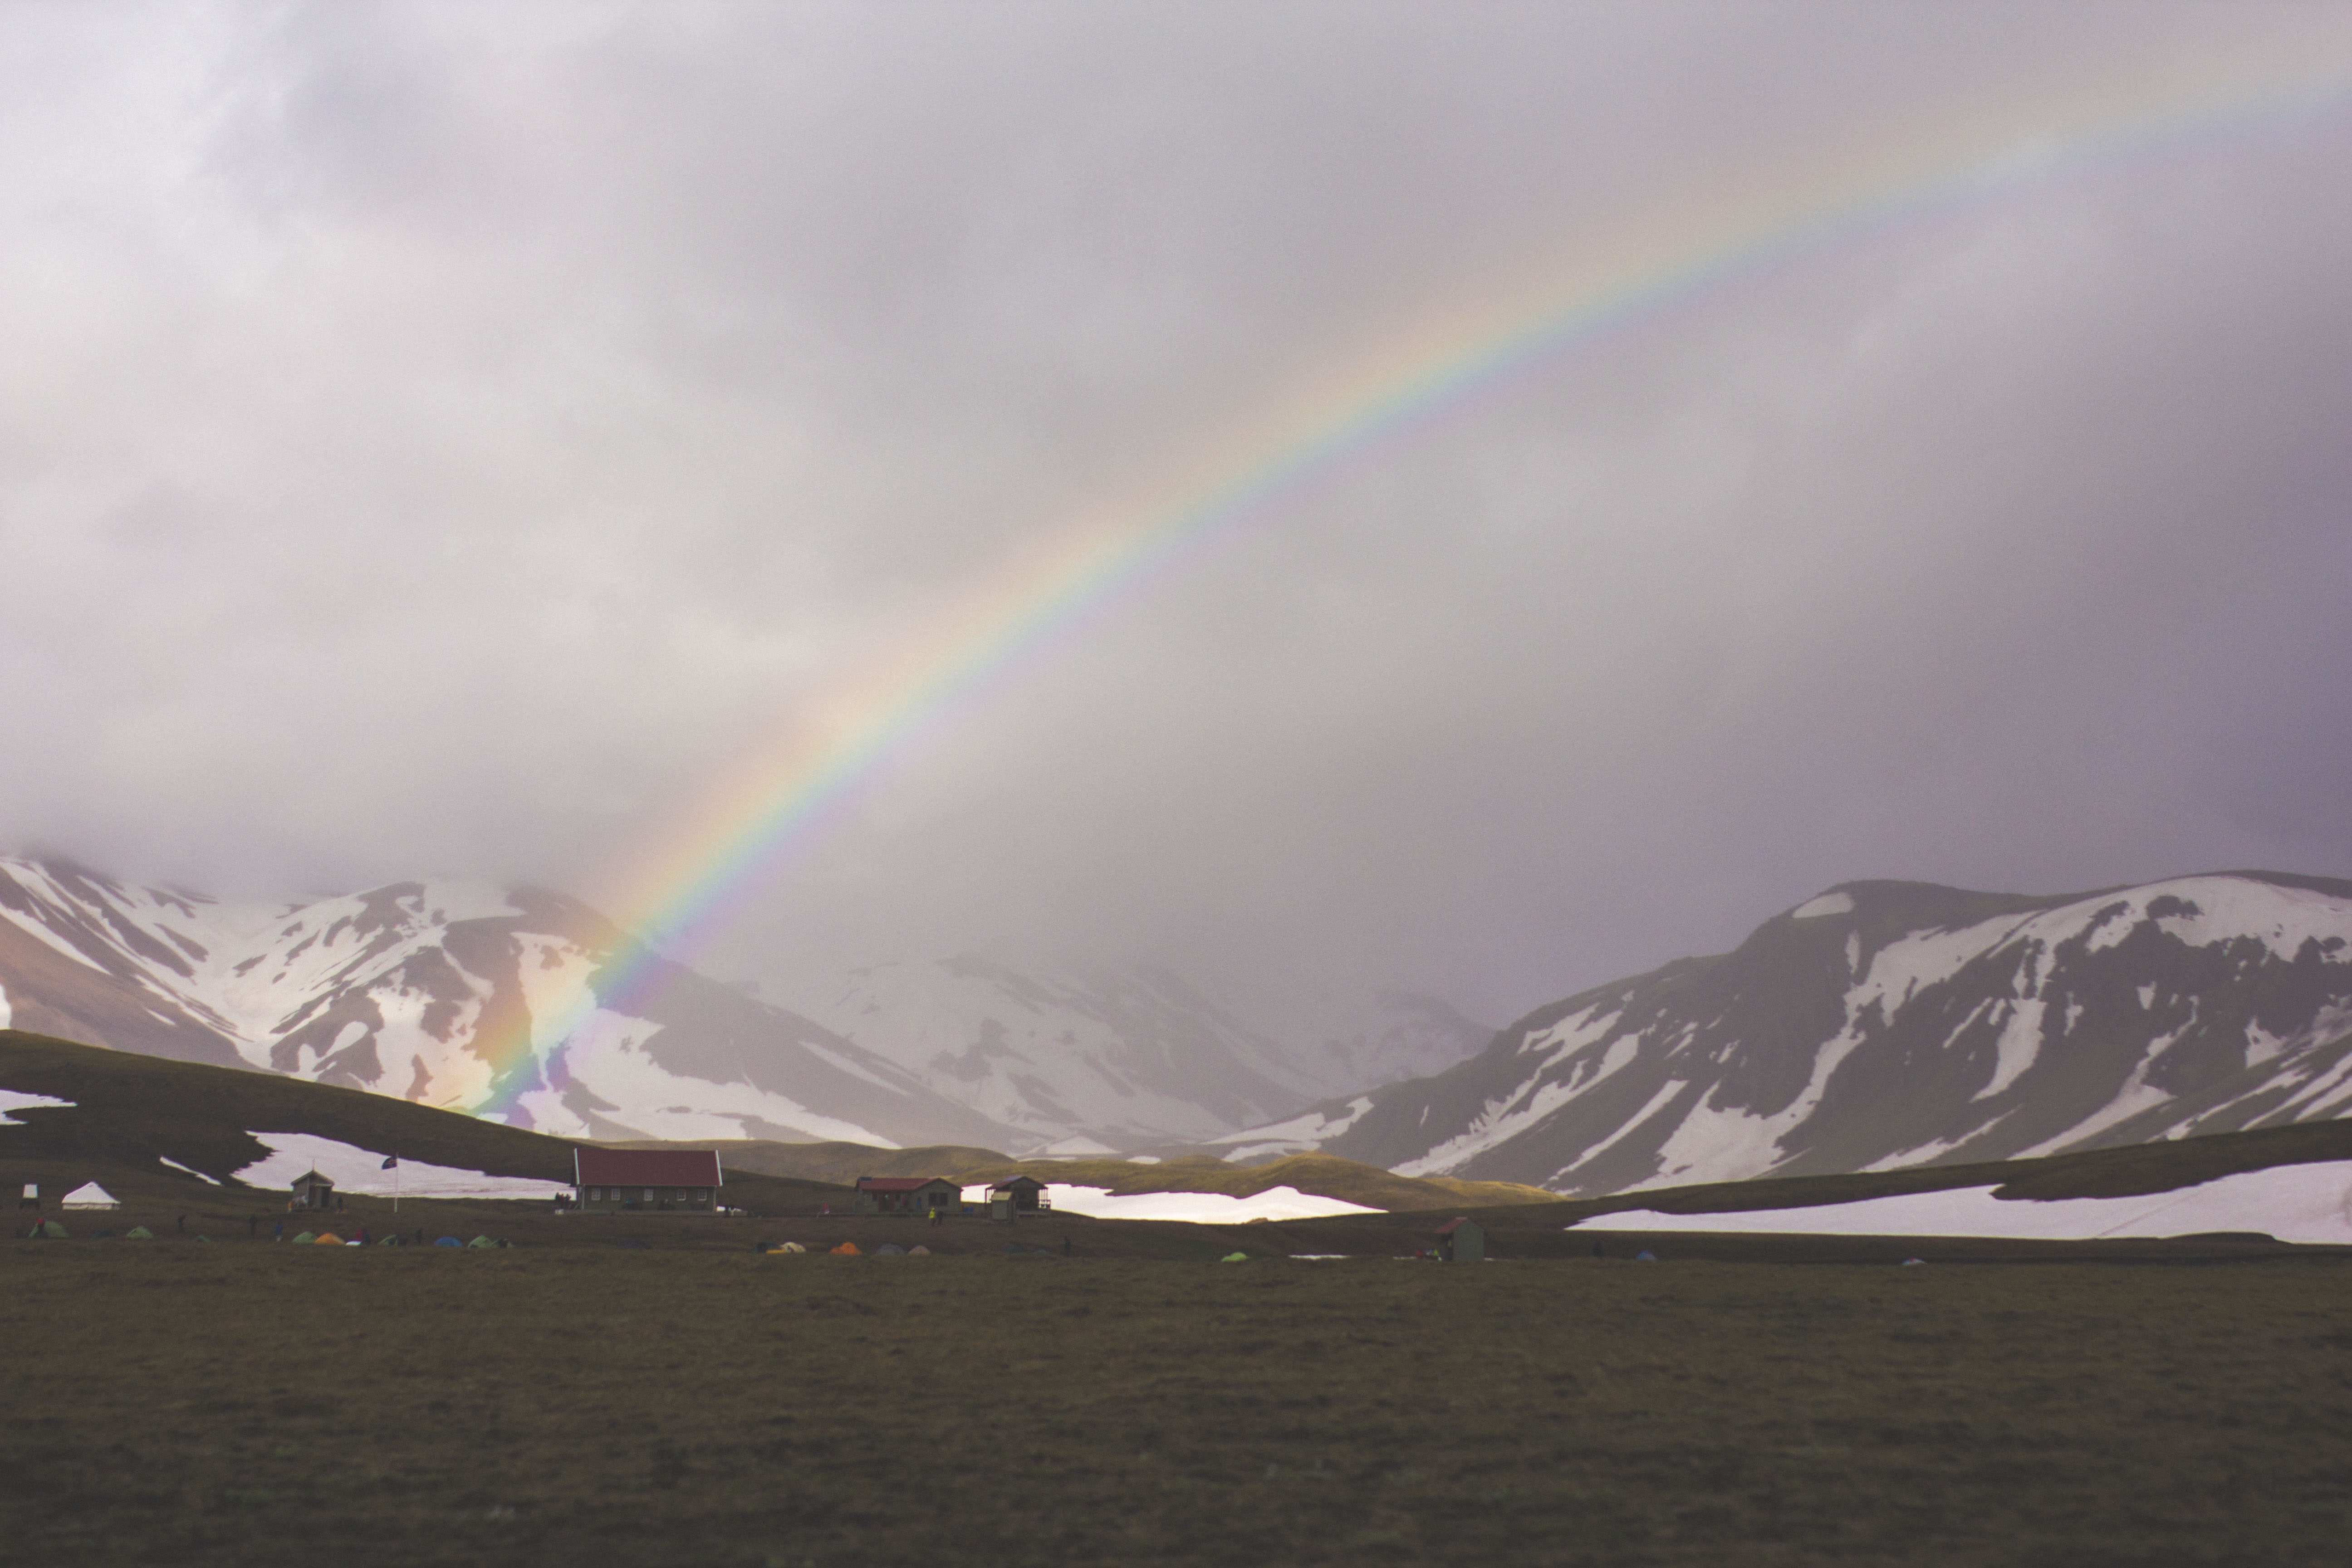 A landscape of rainbow over a field with a view of mountains covered in snow